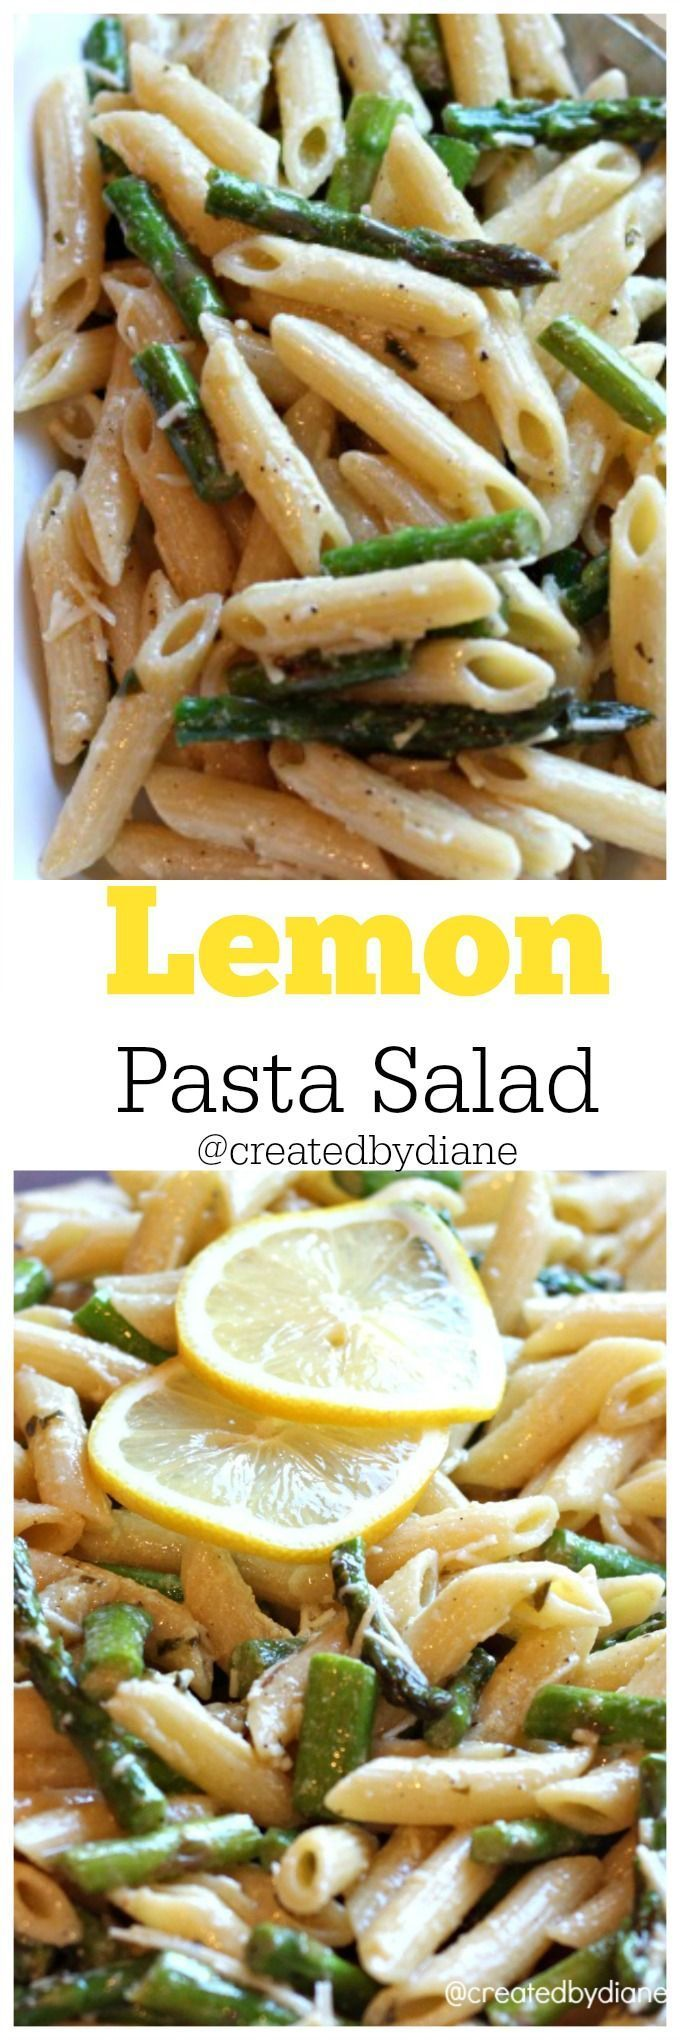 Lemon Pasta Salad recipe from @Created by Diane